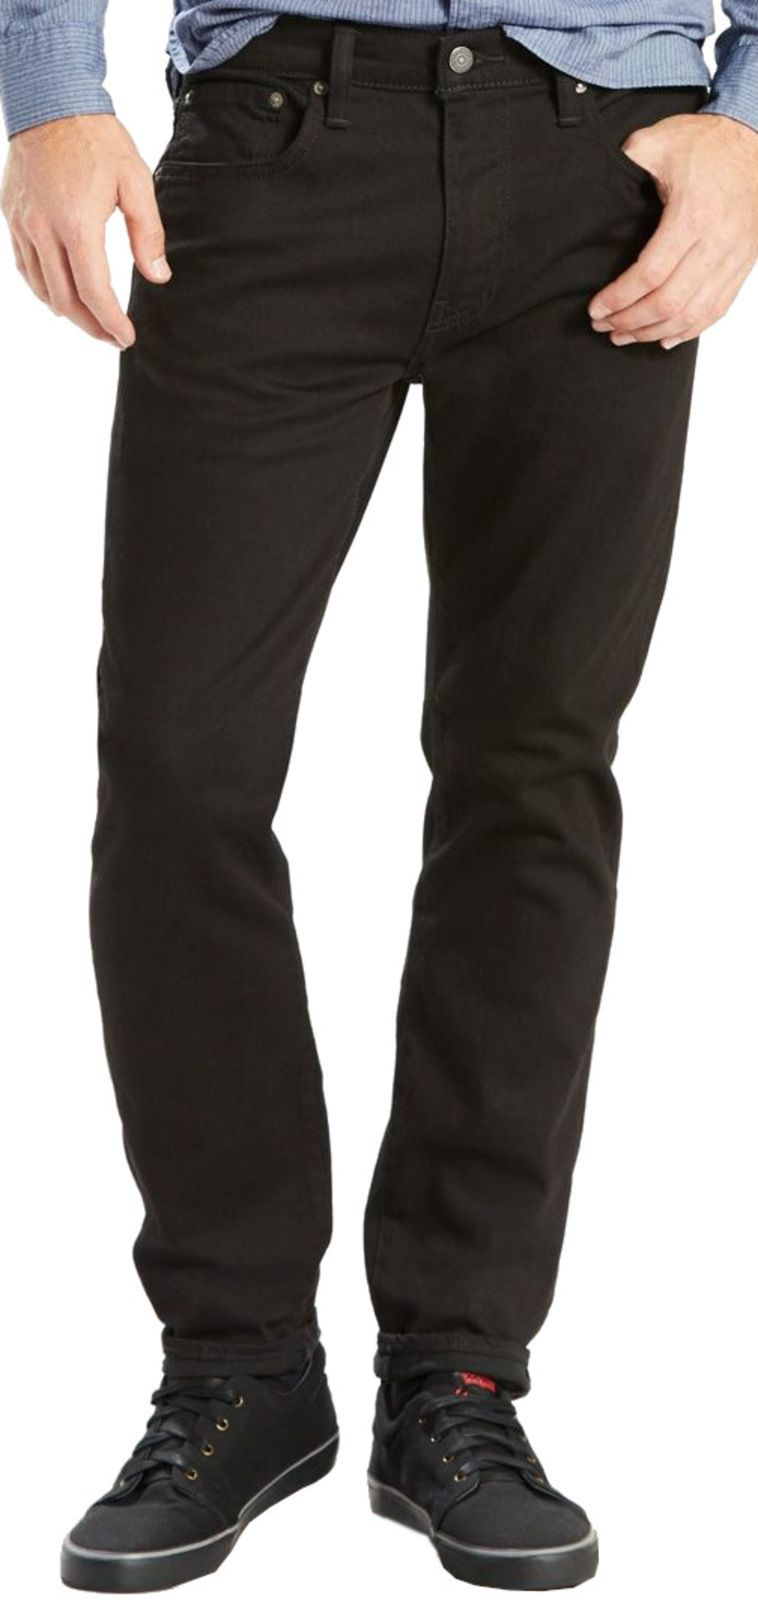 Levi's 502 Regular Taper Fit Denim Jeans Nightshine Black